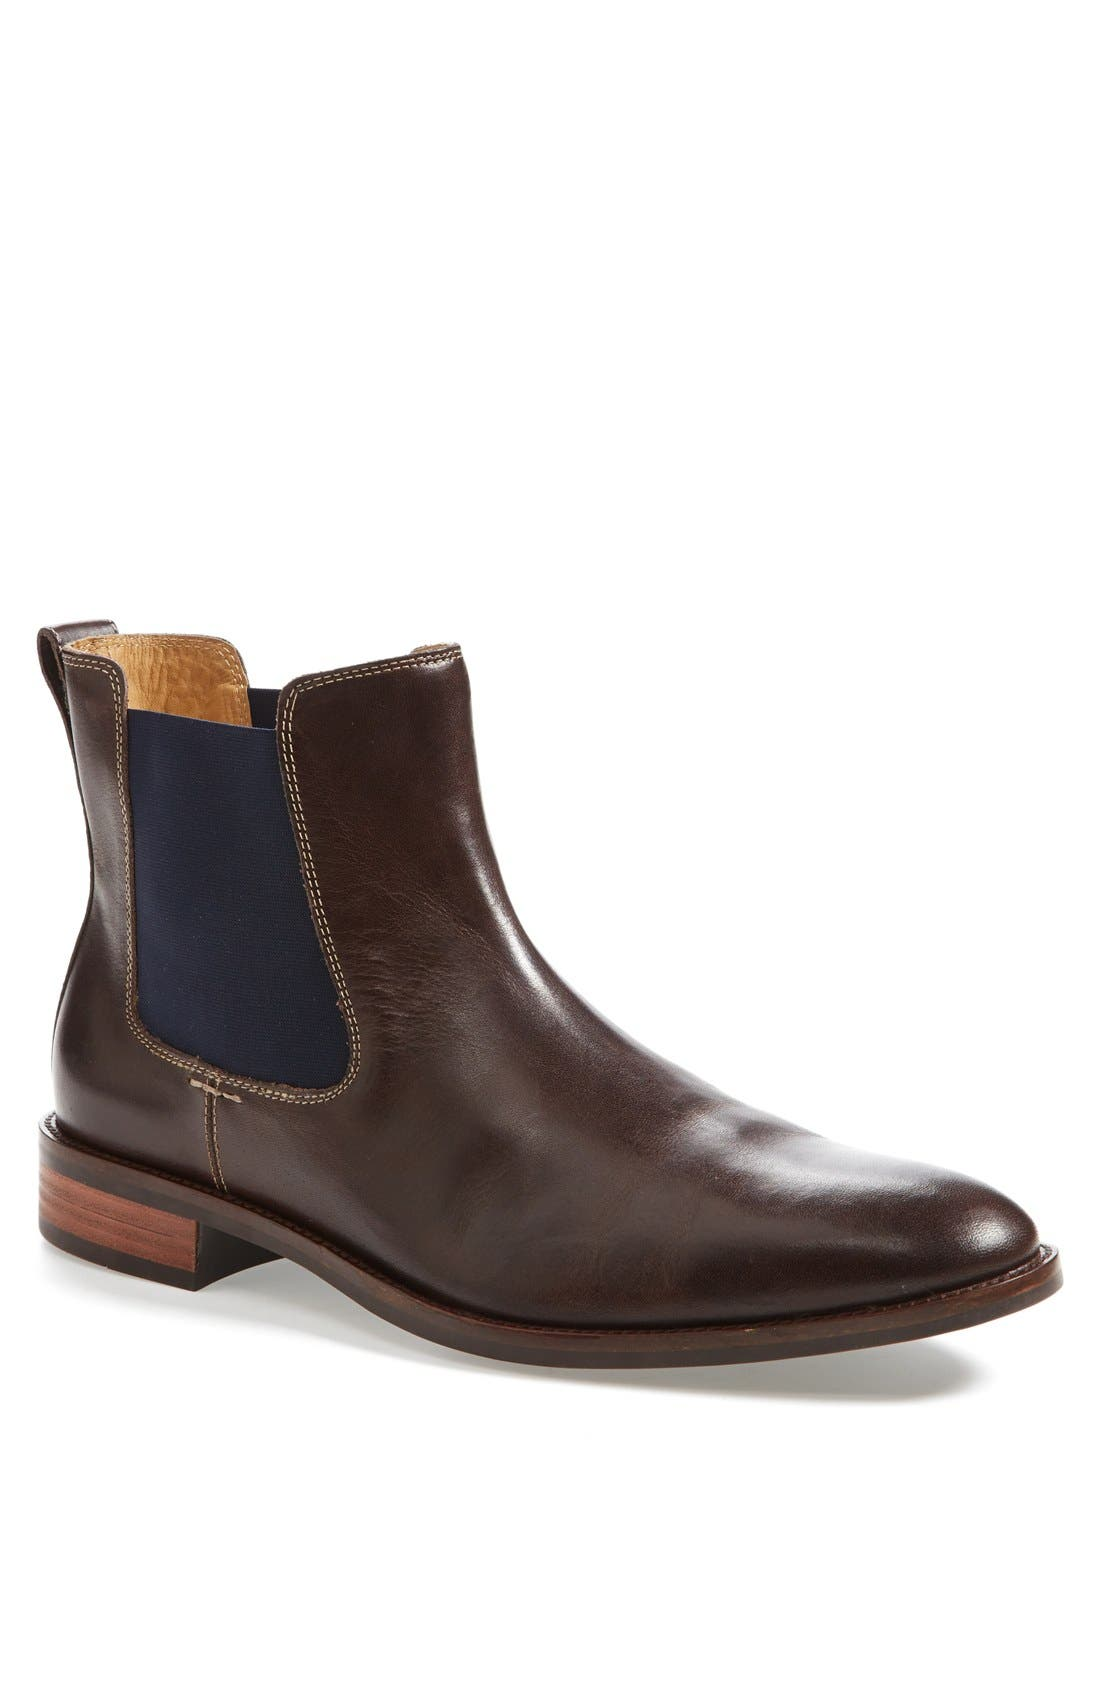 Alternate Image 1 Selected - Cole Haan 'Lenox Hill' Chelsea Boot (Men)